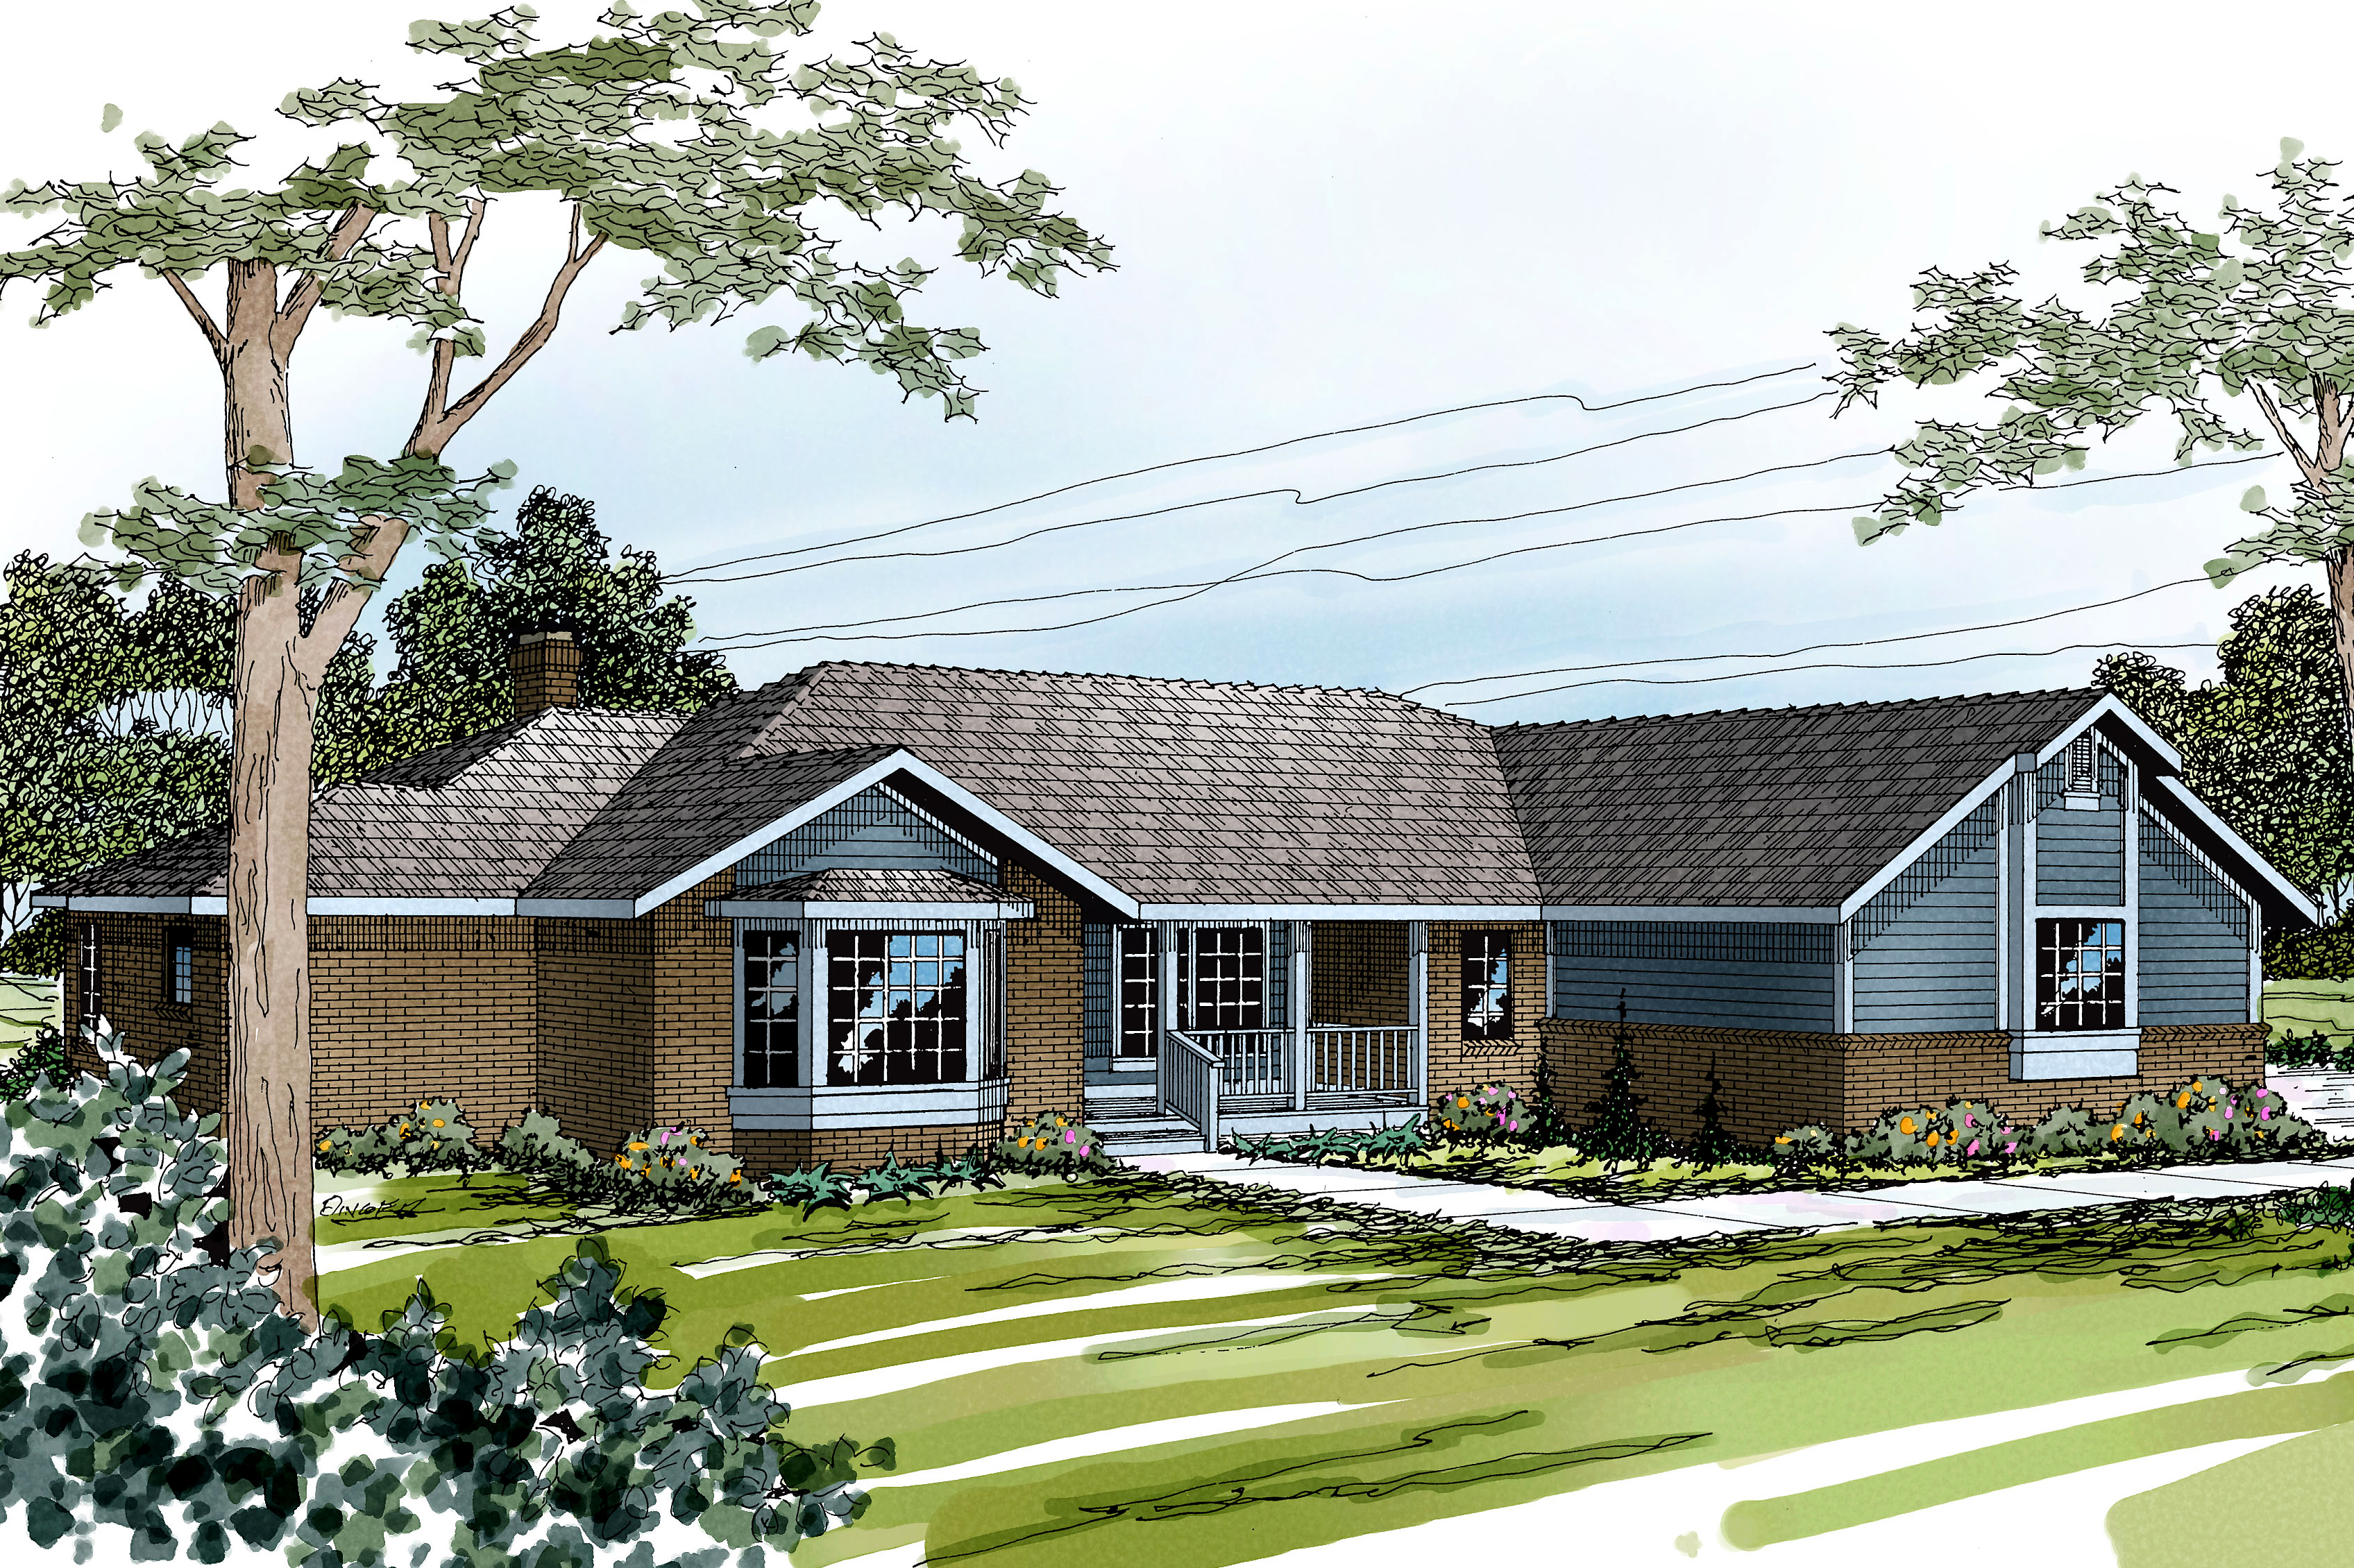 ... House Plans Ranch Style Home. on ranch house plans and designs